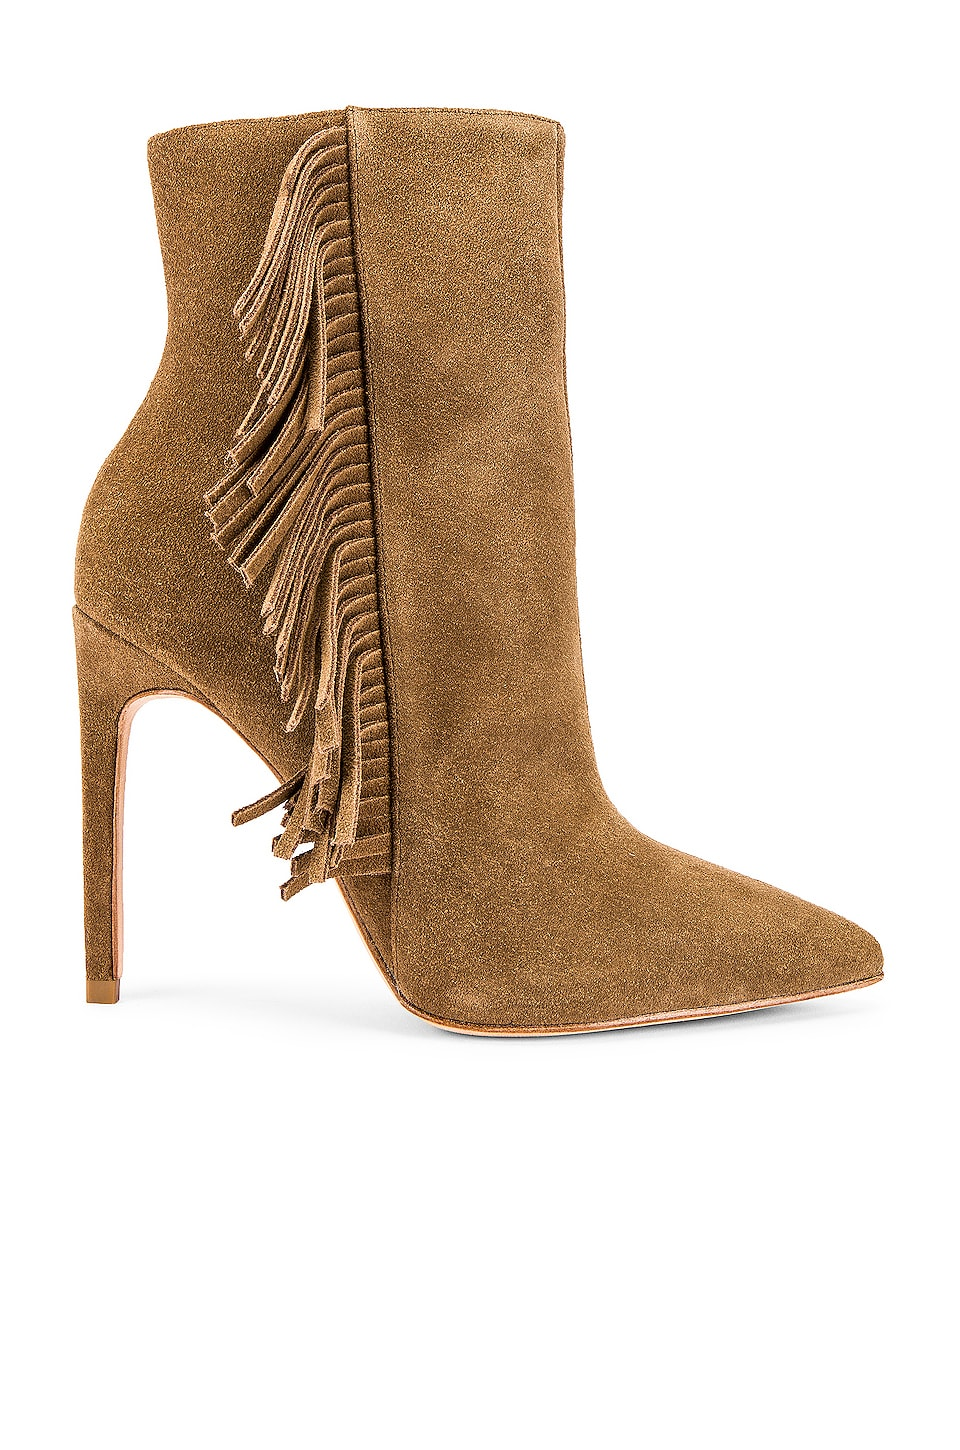 House of Harlow 1960 x REVOLVE Asher Bootie in Brown